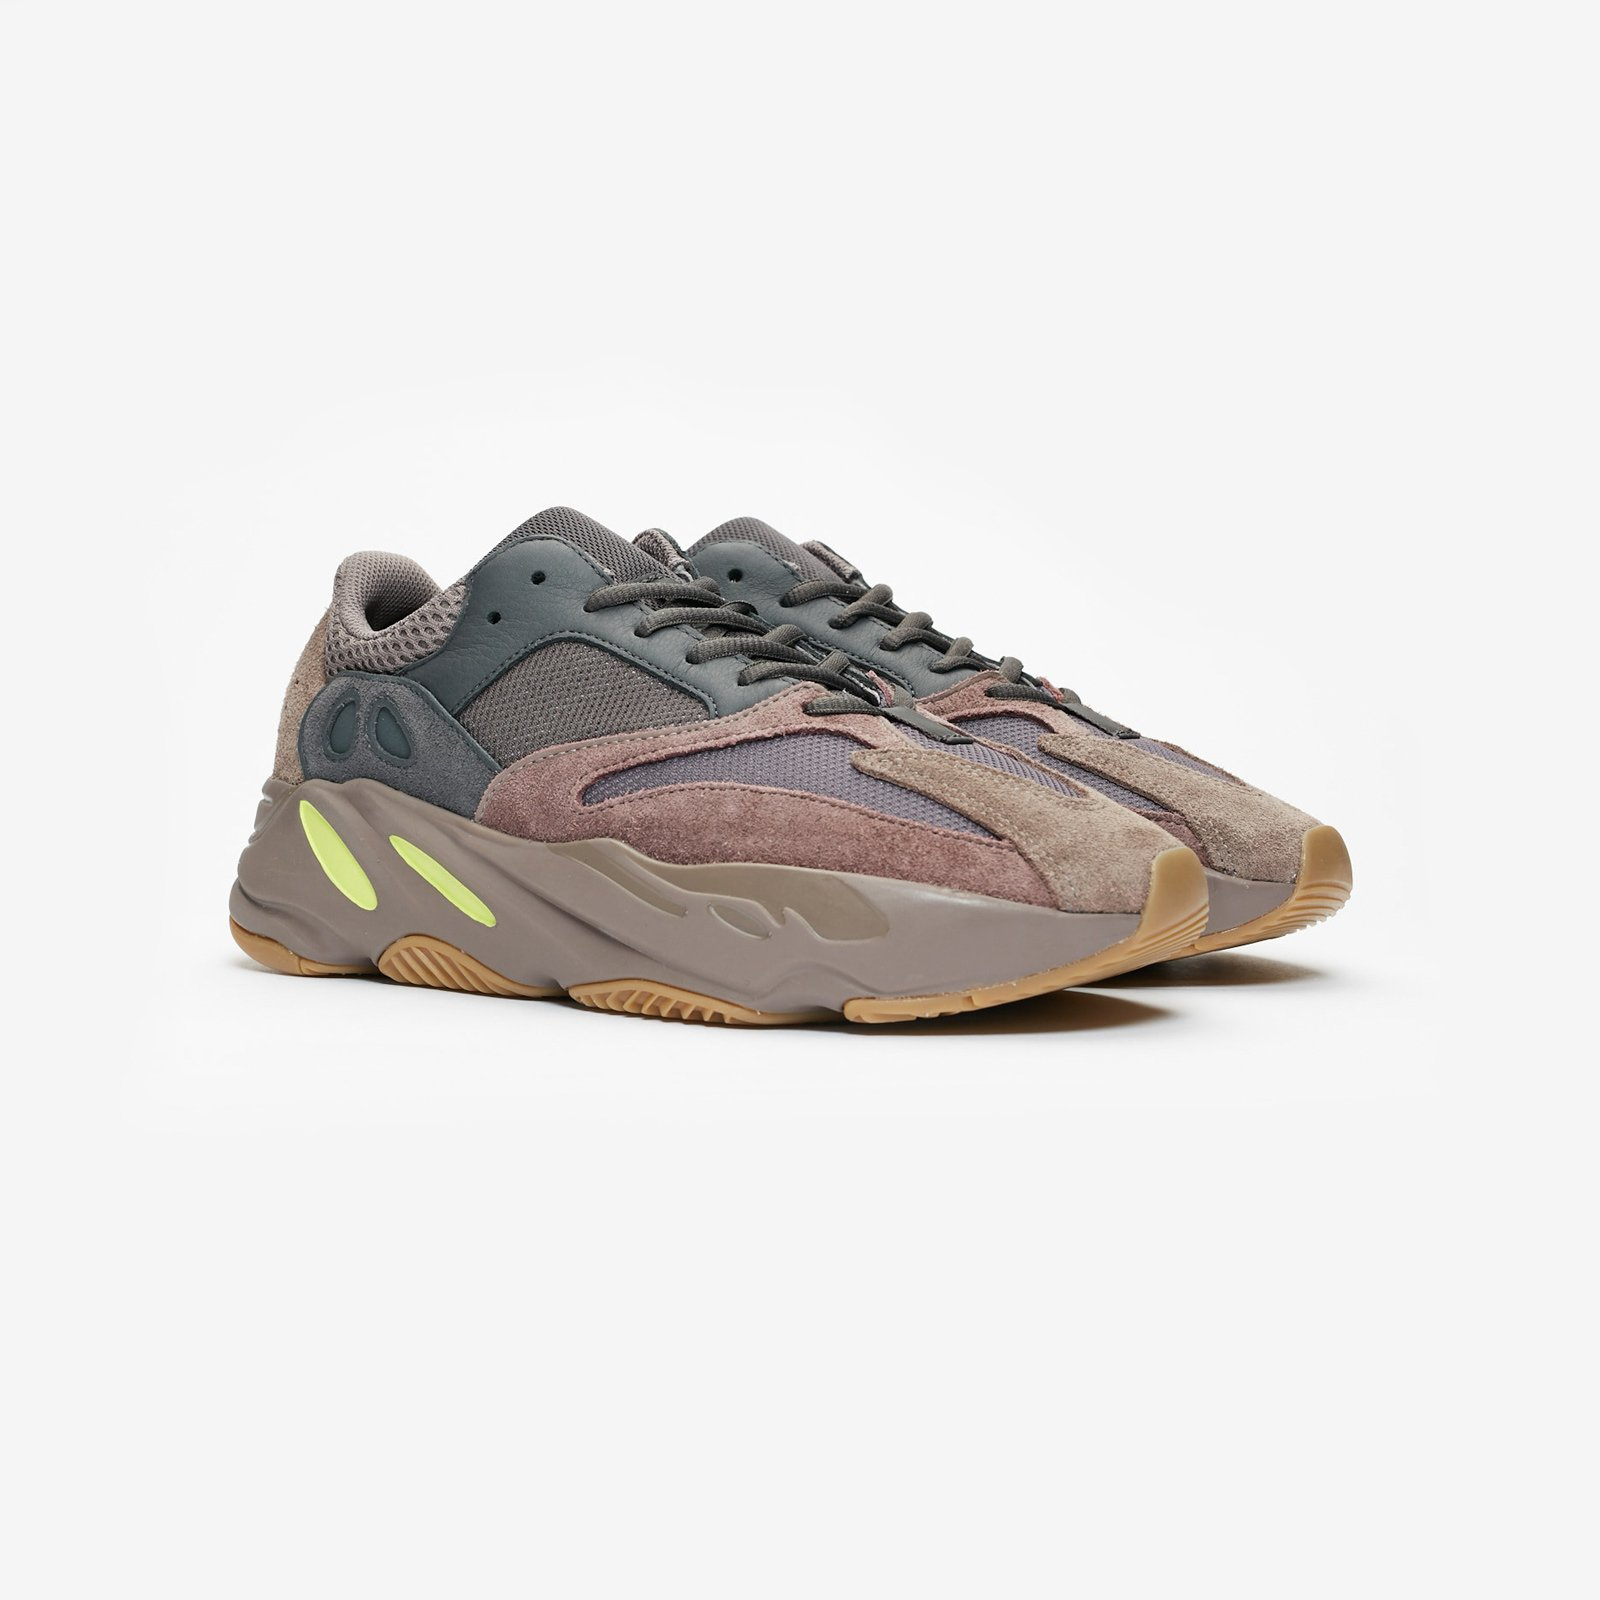 4e059a6cb adidas YEEZY BOOST 700 - Ee9614 - Sneakersnstuff